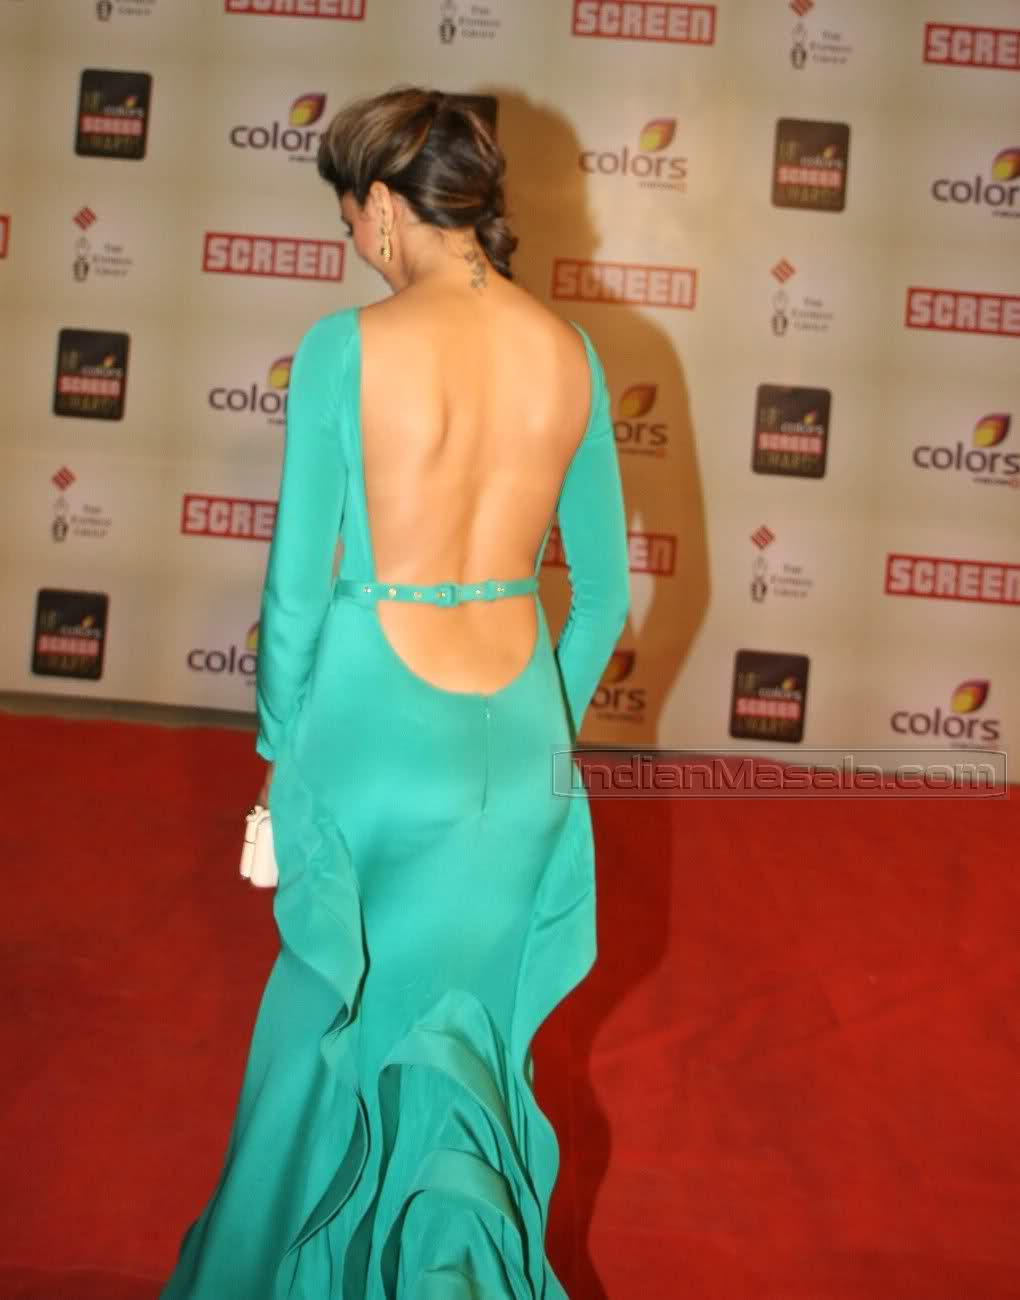 deepika-padukone-hot-back-images1